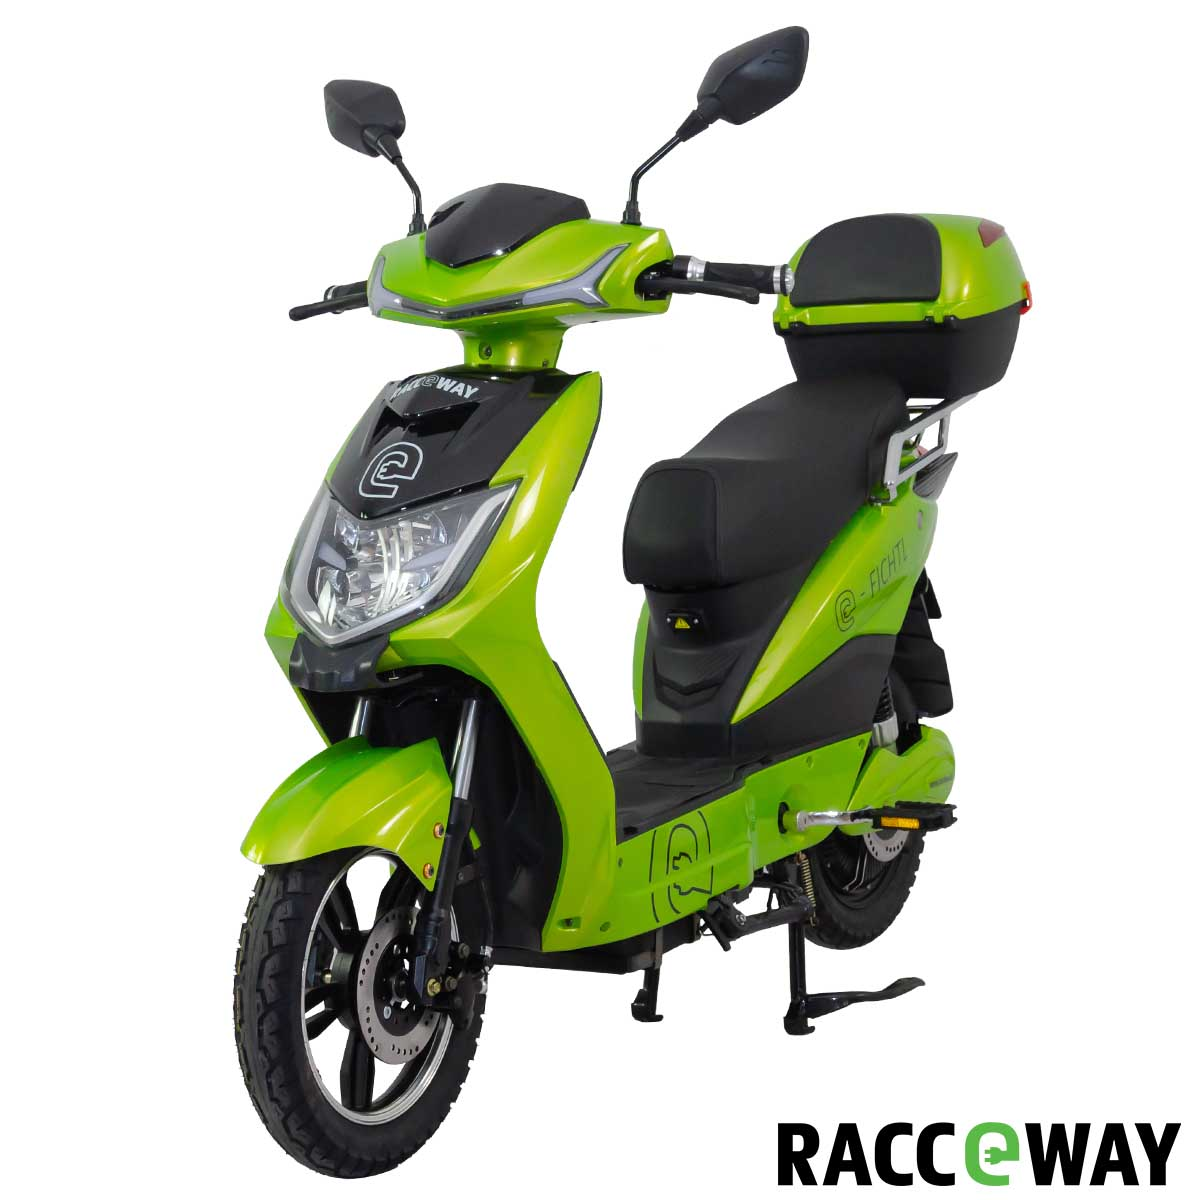 https://www.racceway.cz/inshop/catalogue/products/pictures/motoe-1f-06_a2.jpg?timestamp=20210927100338